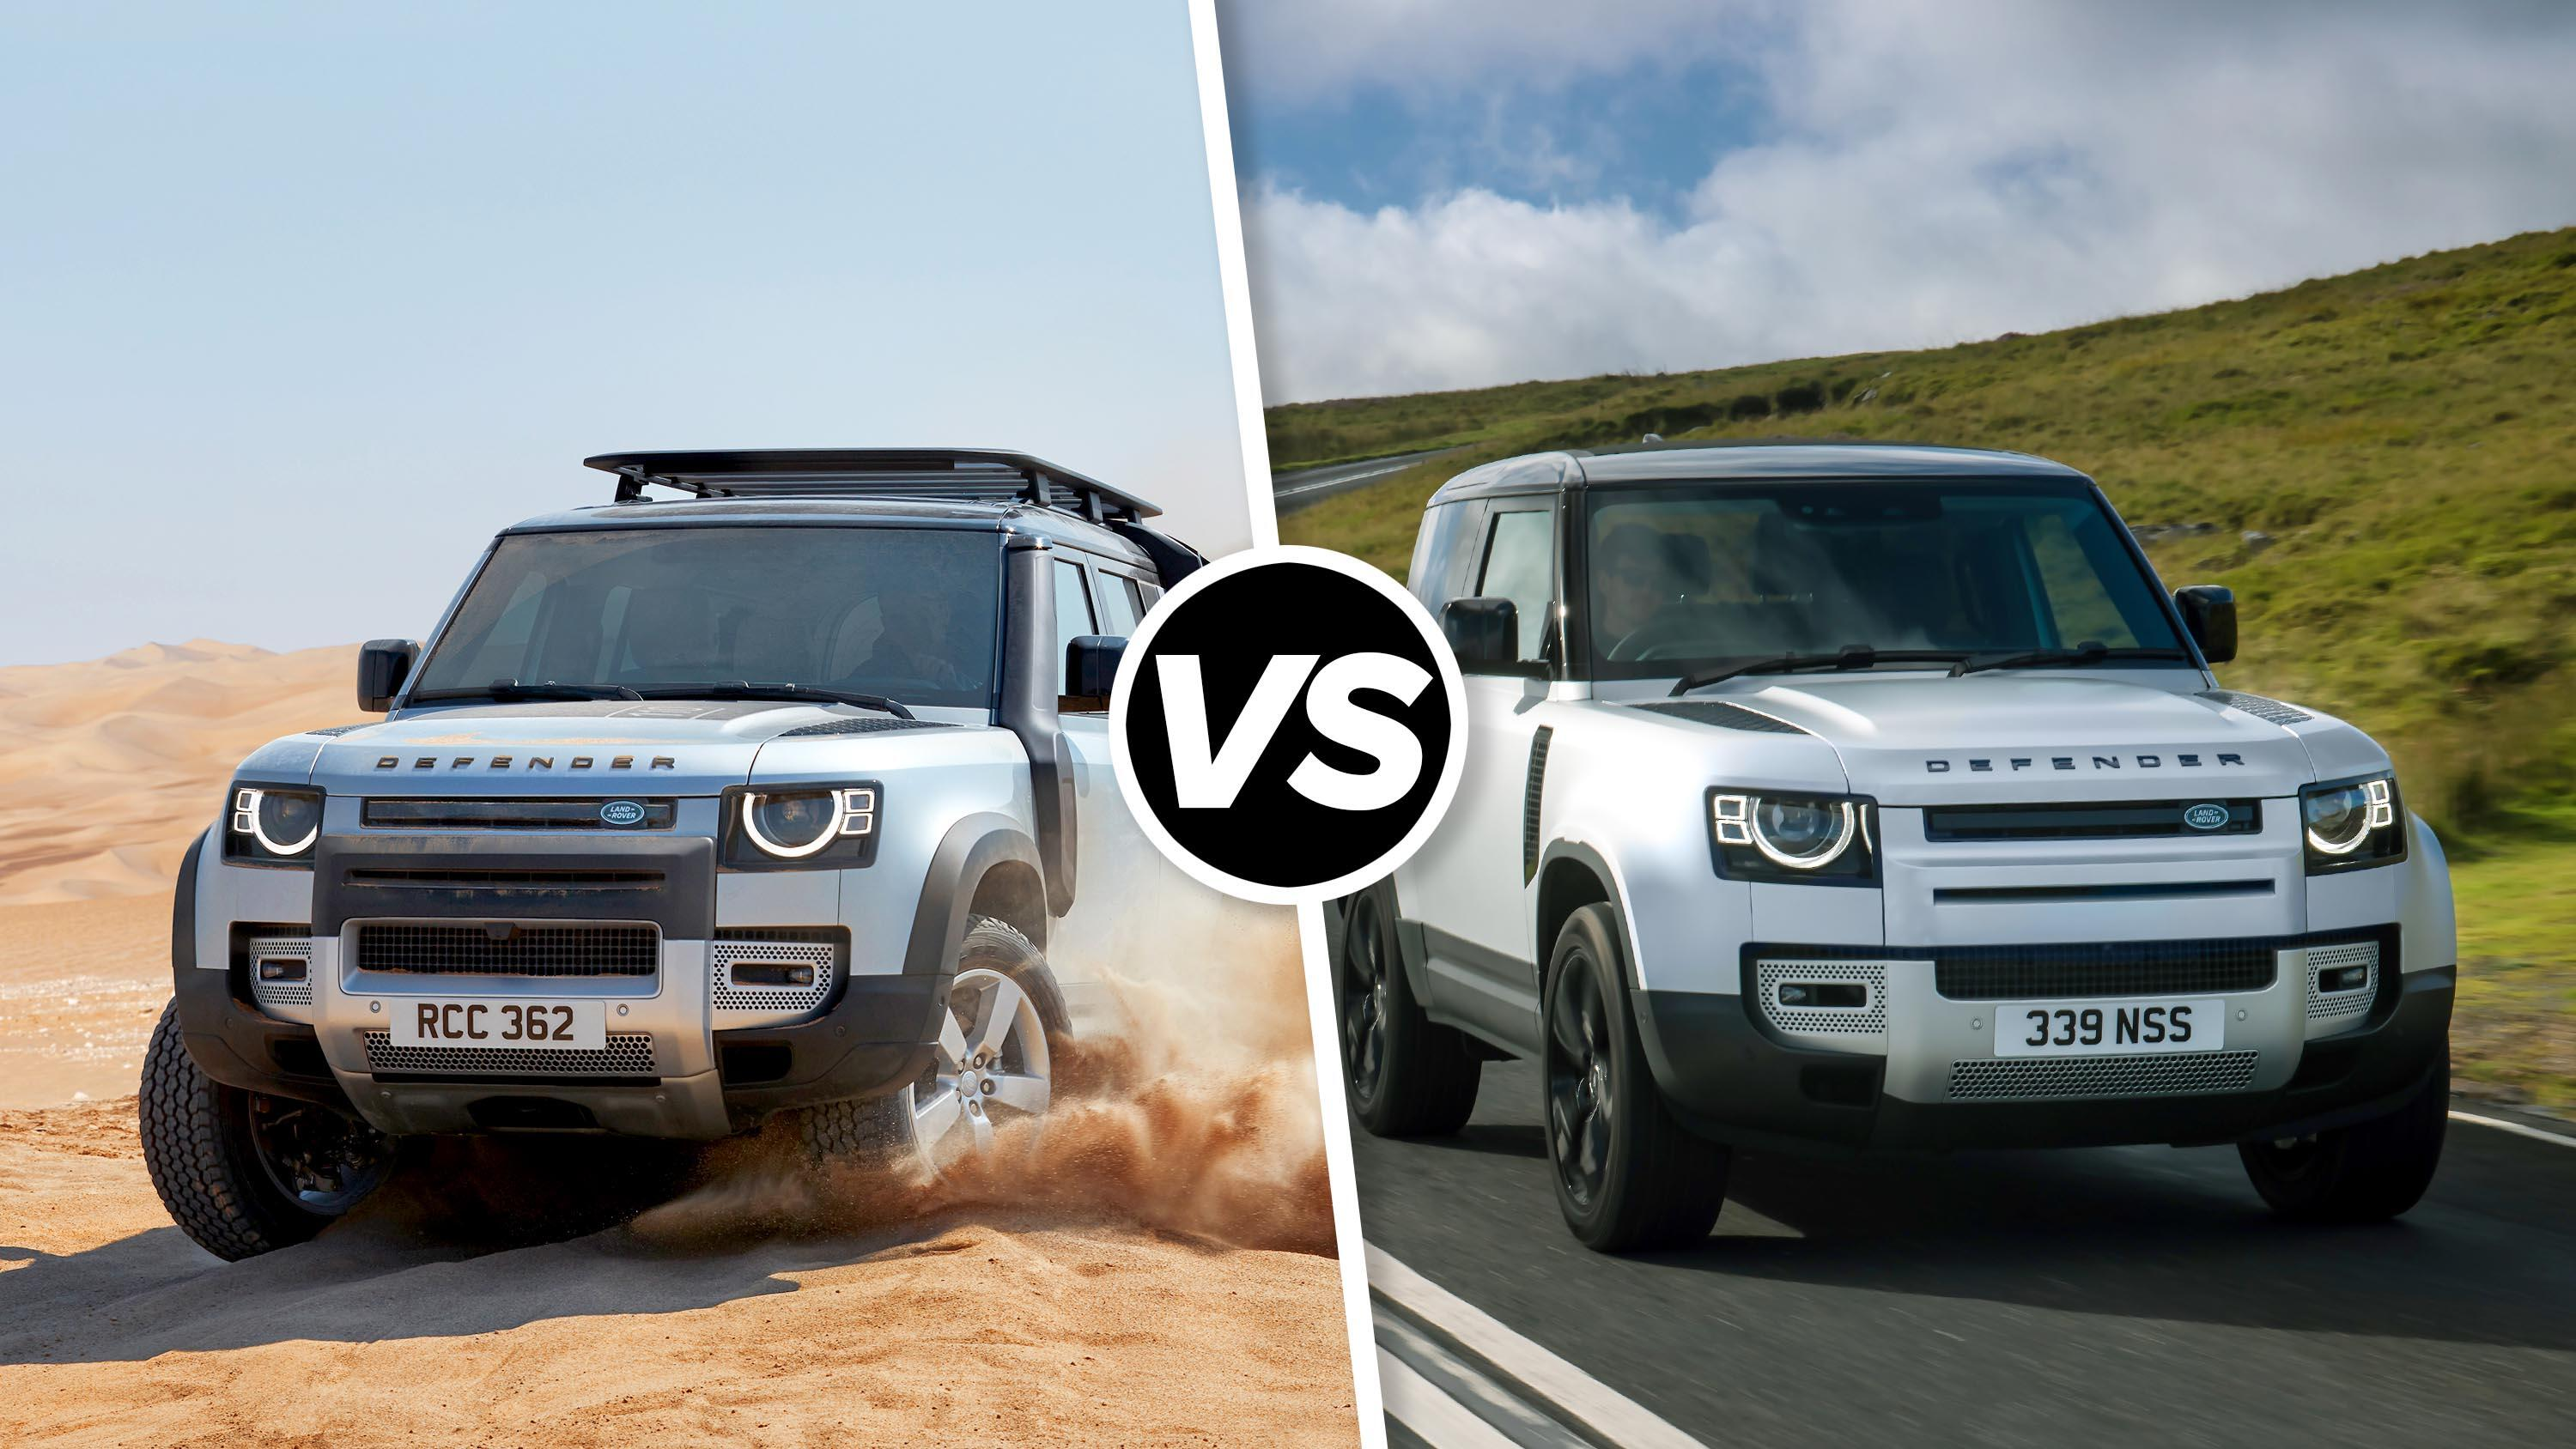 Video: Defender price comparison: Base model vs. top of the line